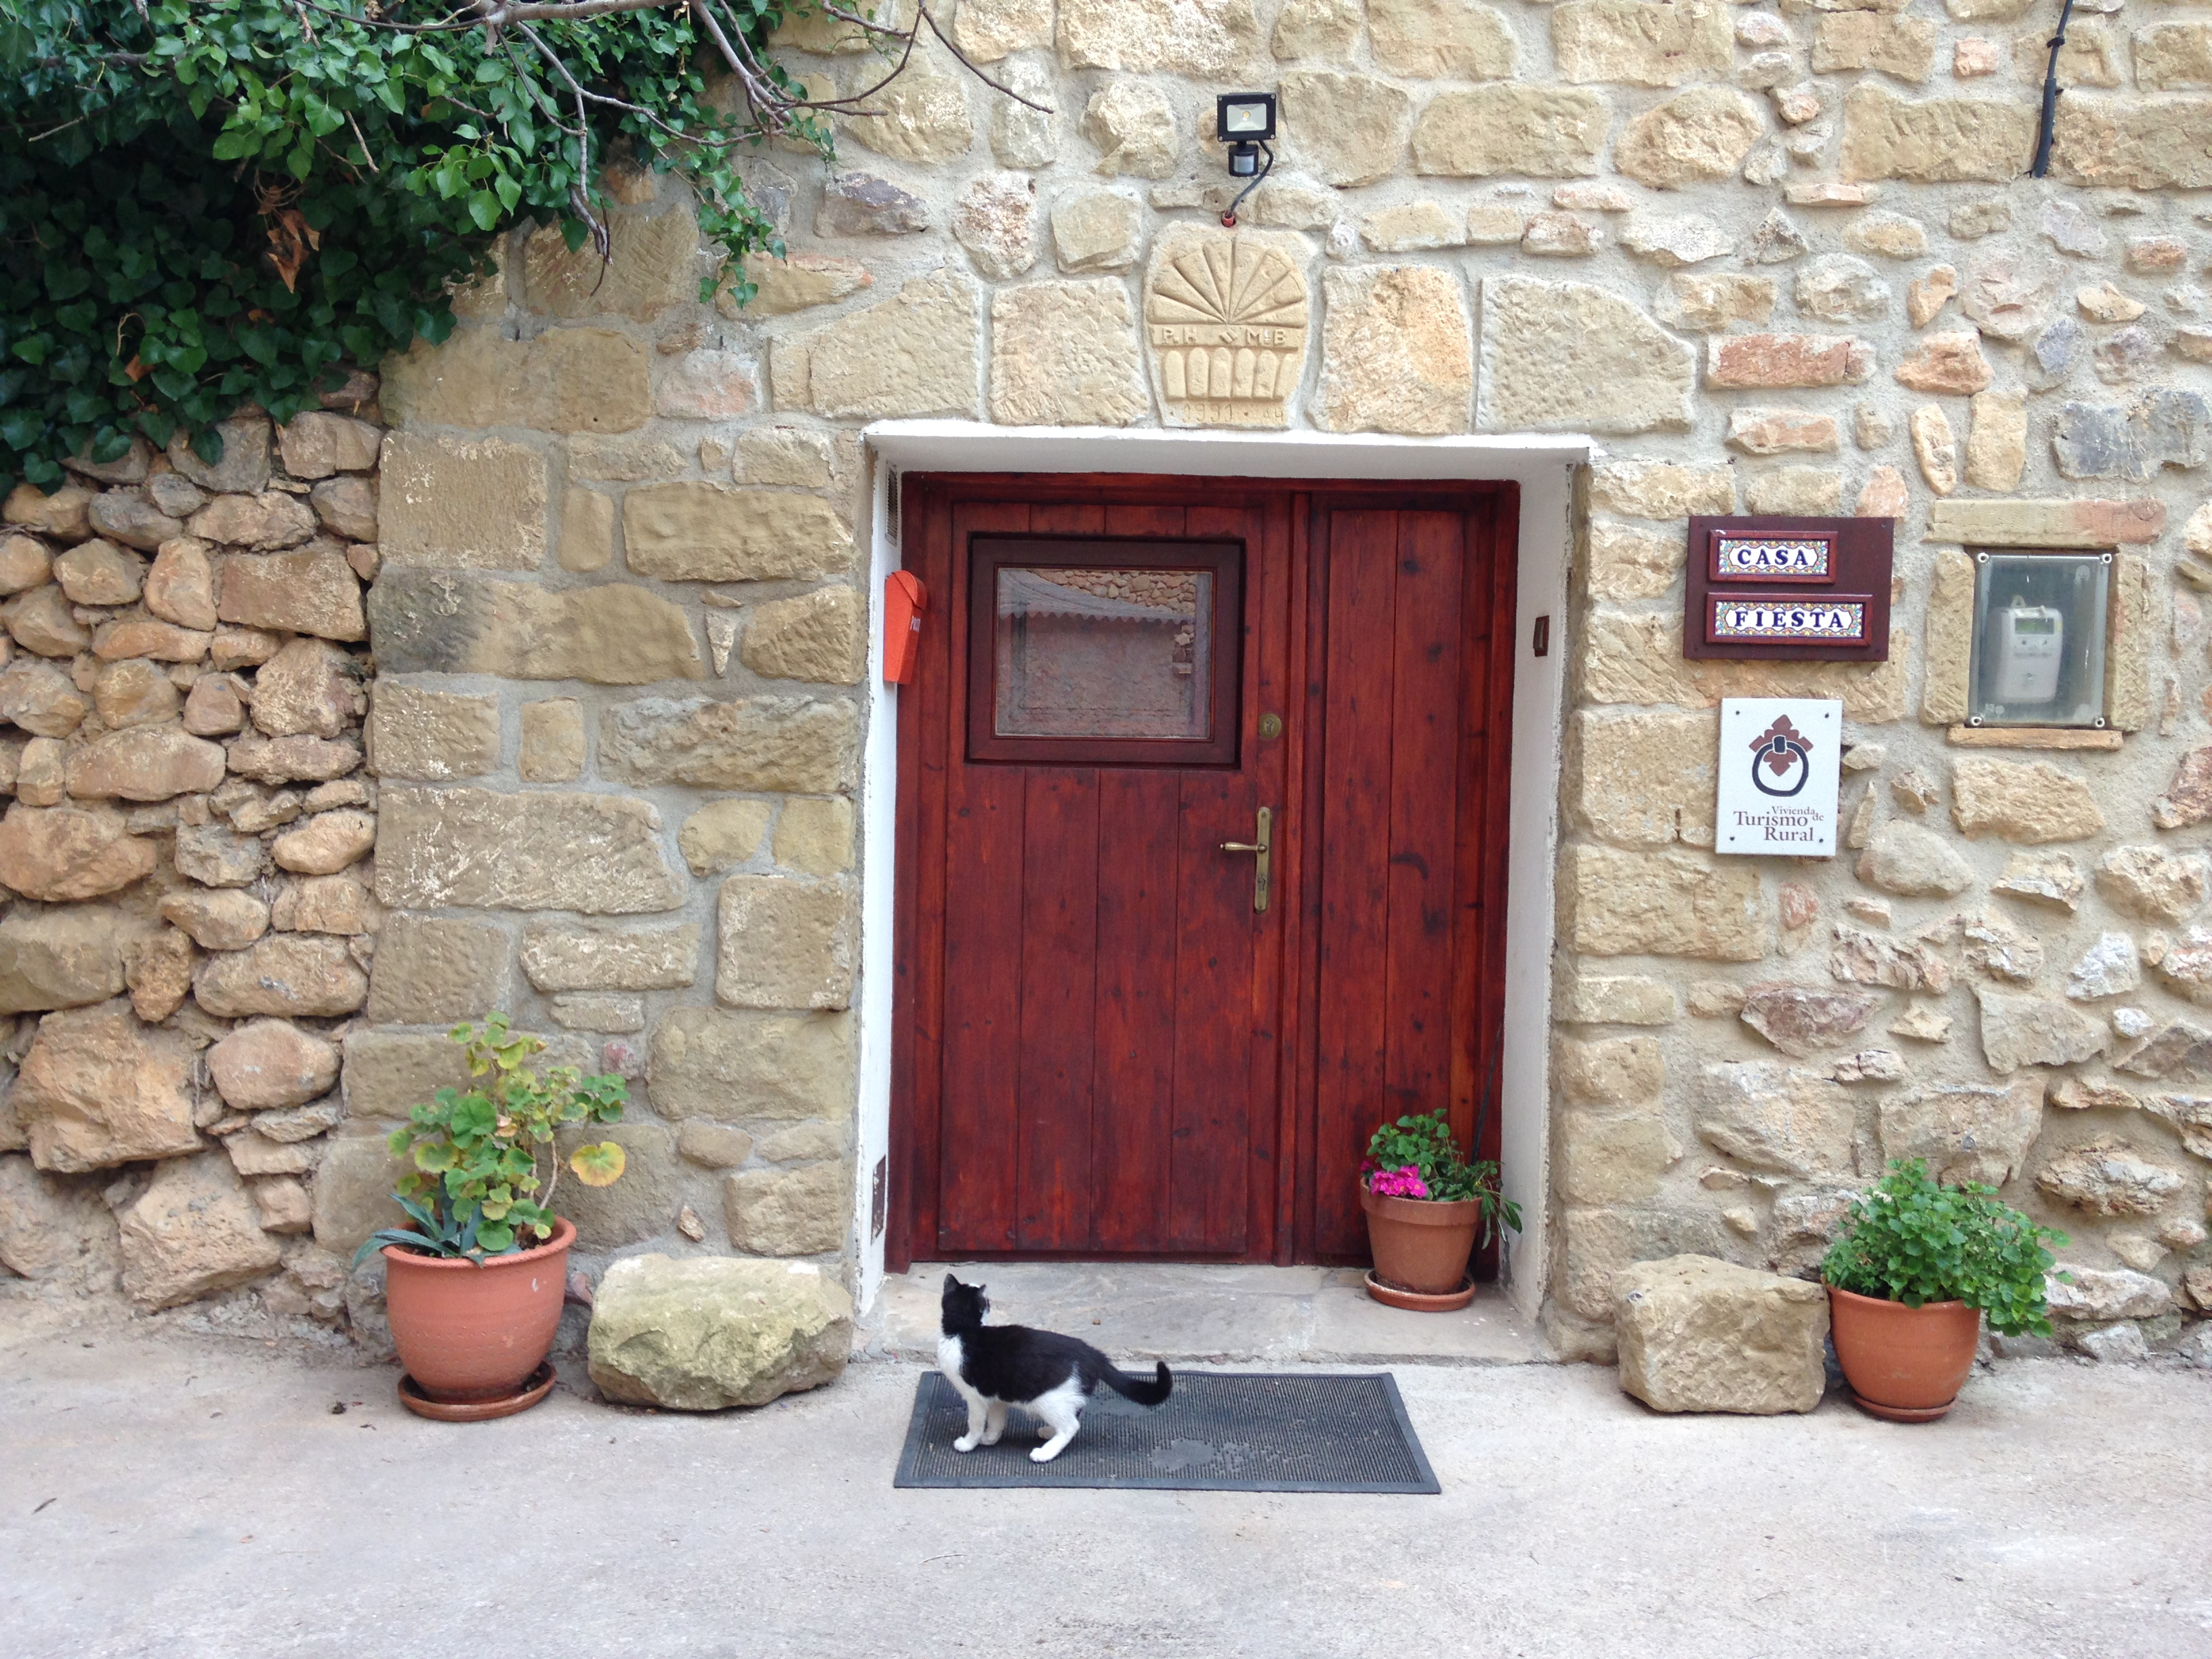 Banner image; view of the house with Turismo Rural plaque and Sam the cat